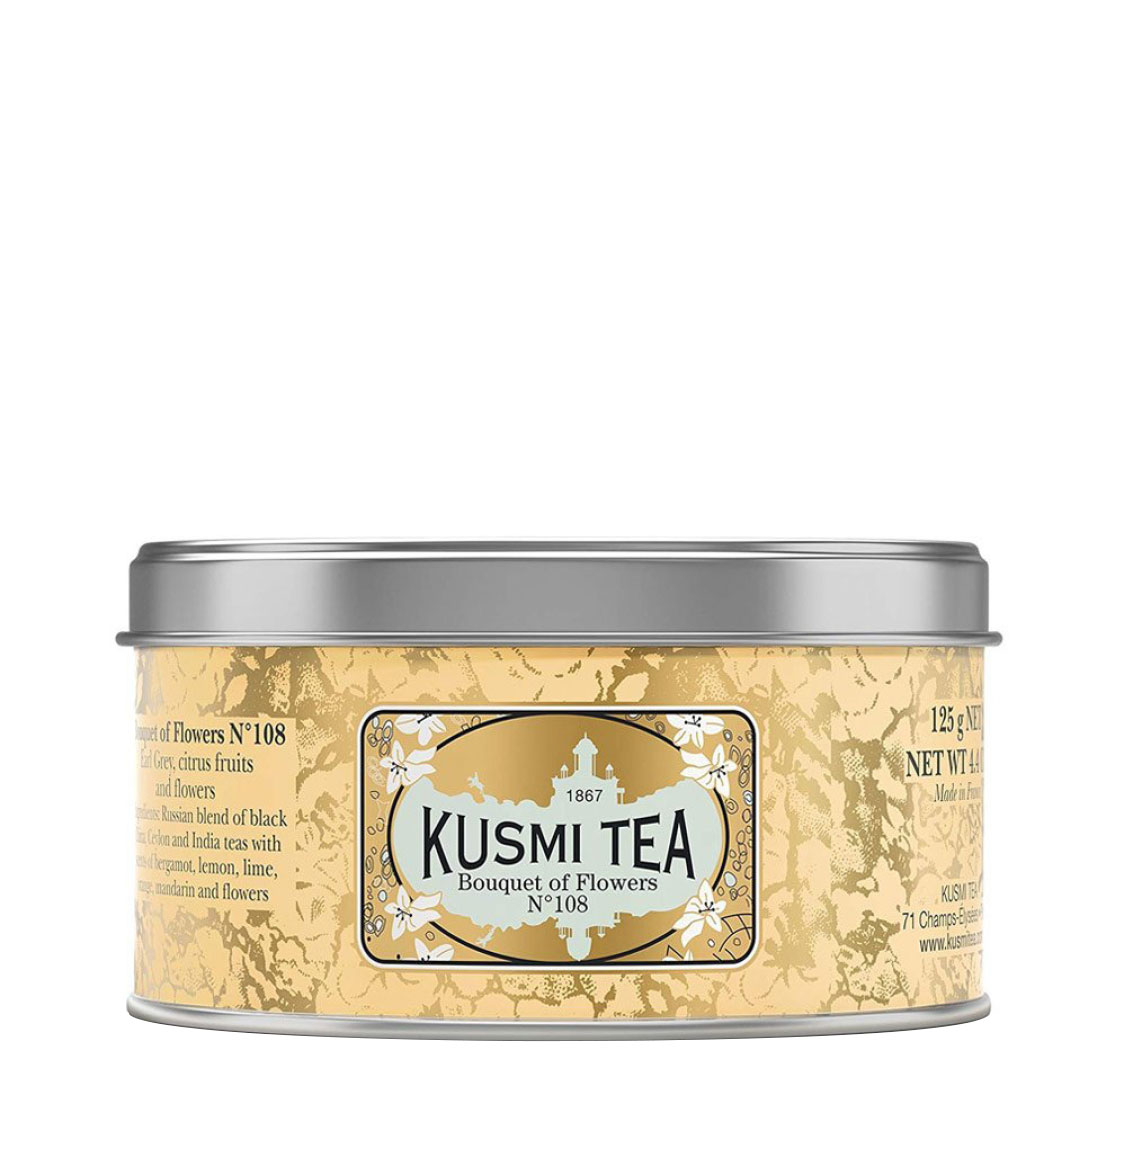 Kusmi Tea Bouquet of Flowers n108 125g